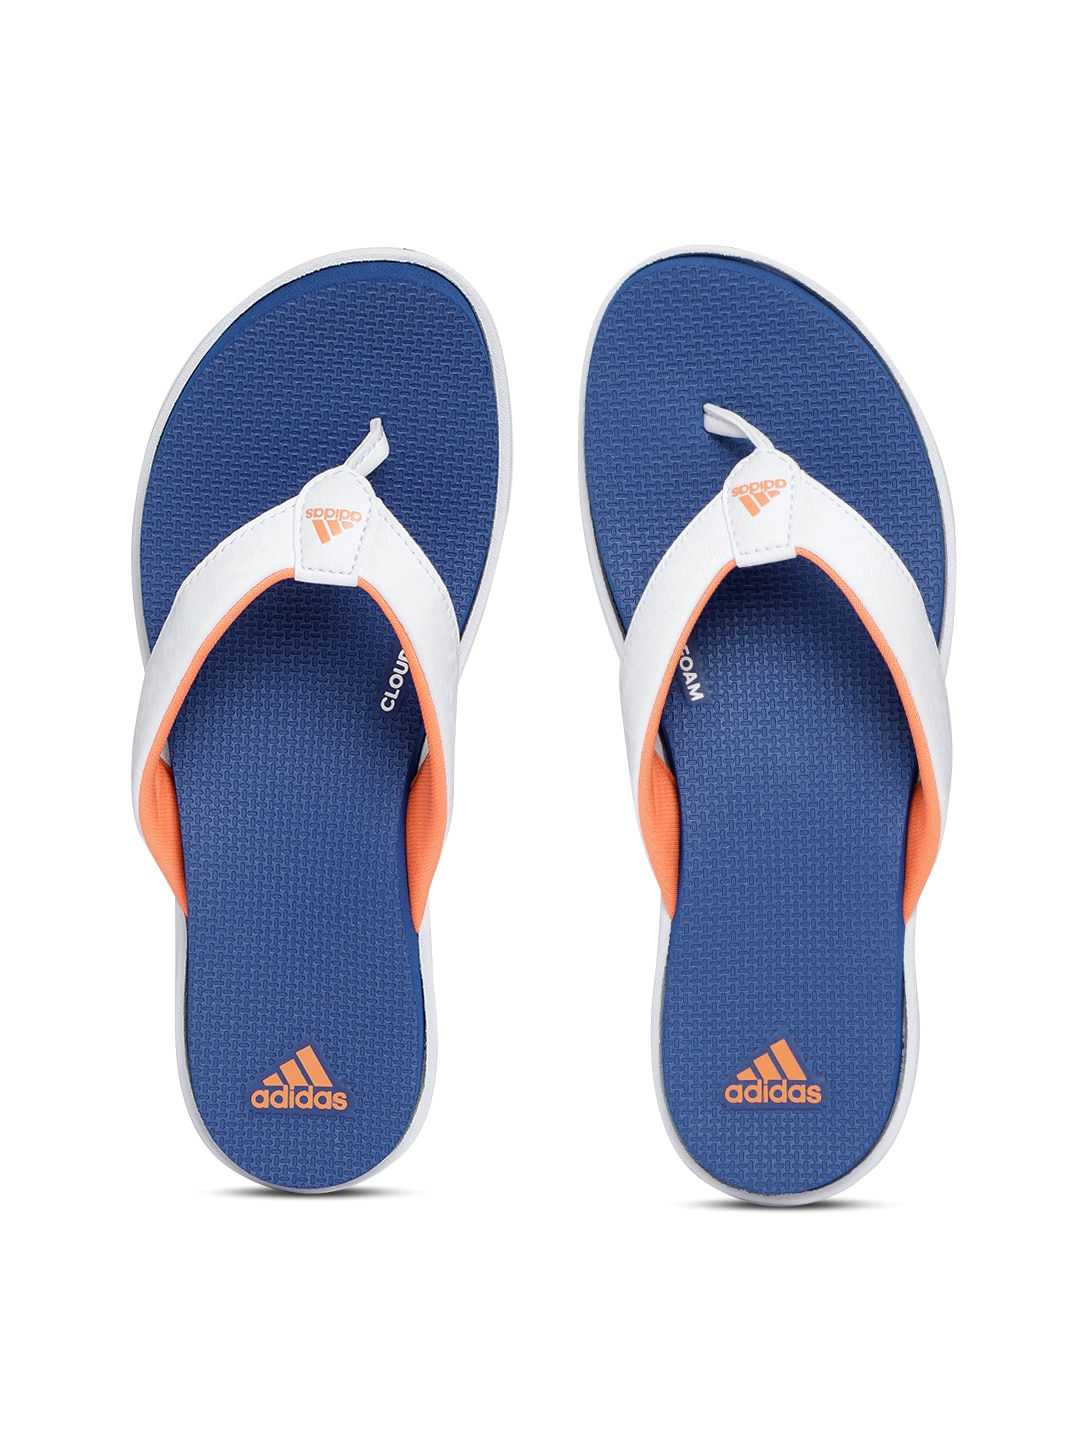 a4b6acc96445 Adidas Slippers - Buy Adidas Slipper   Flip Flops Online India